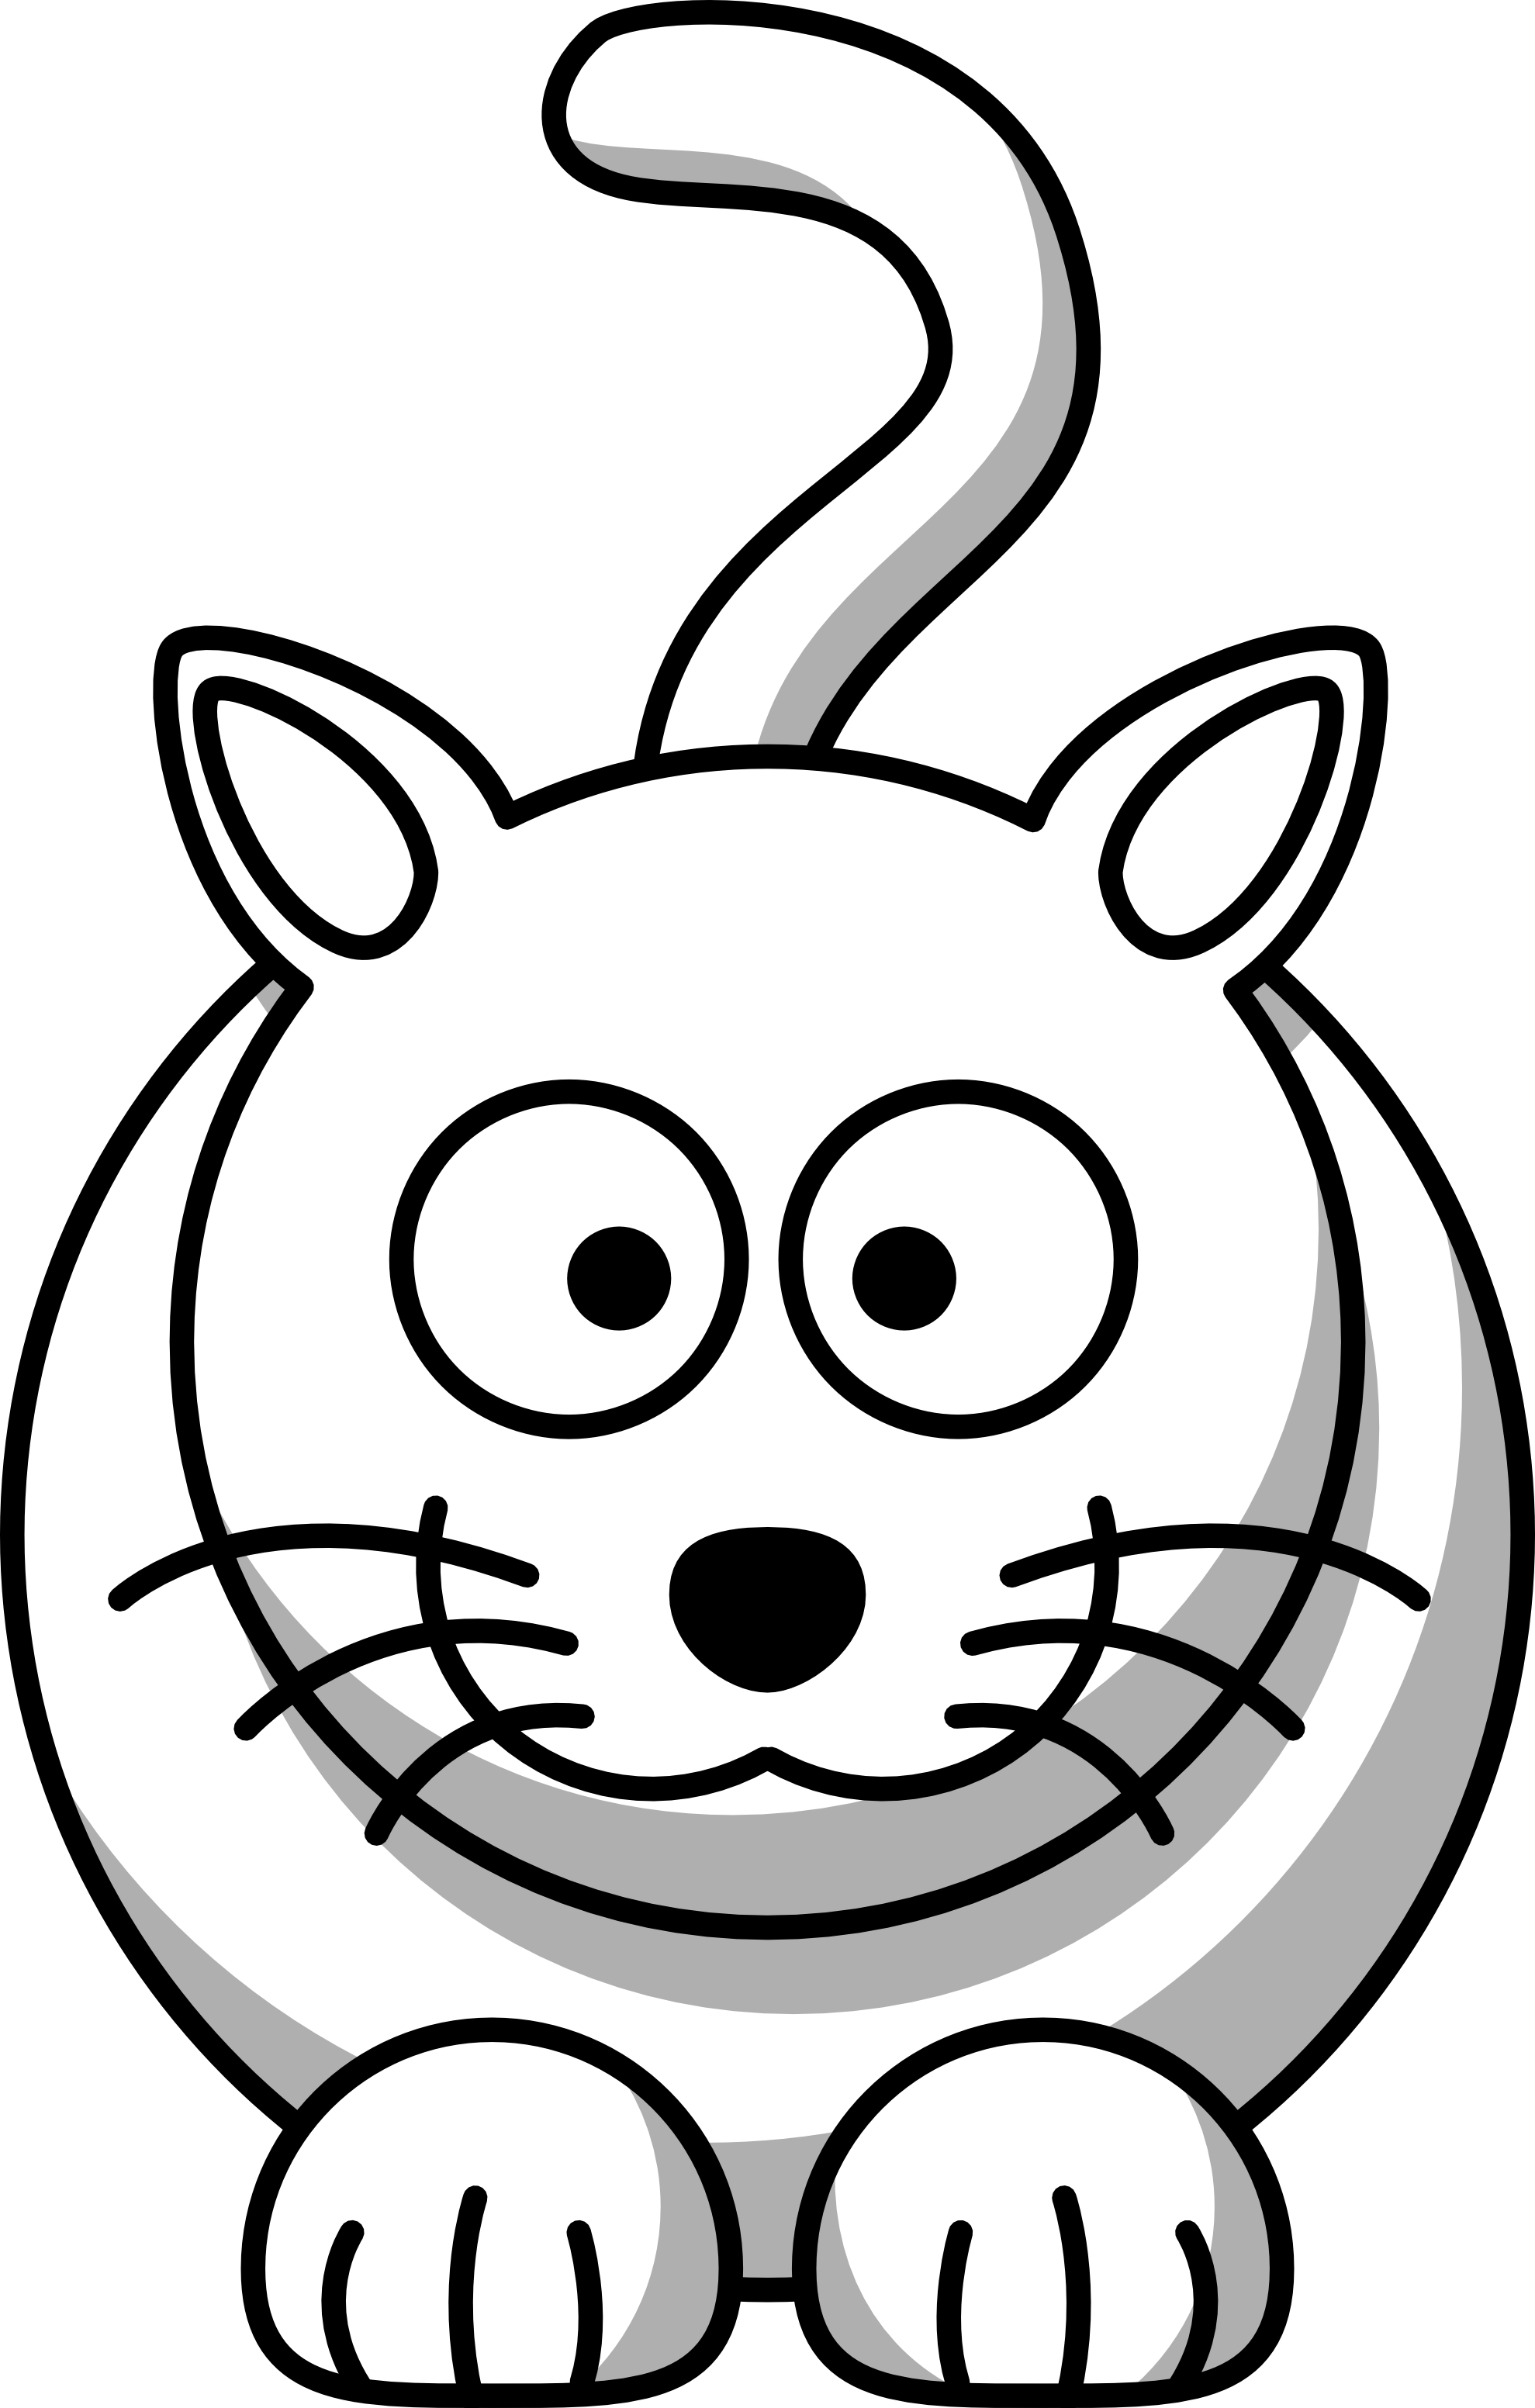 Dog cat clipart black and white free library Cartoon Animals Black And White Pictures 5 HD Wallpapers | amagico ... free library